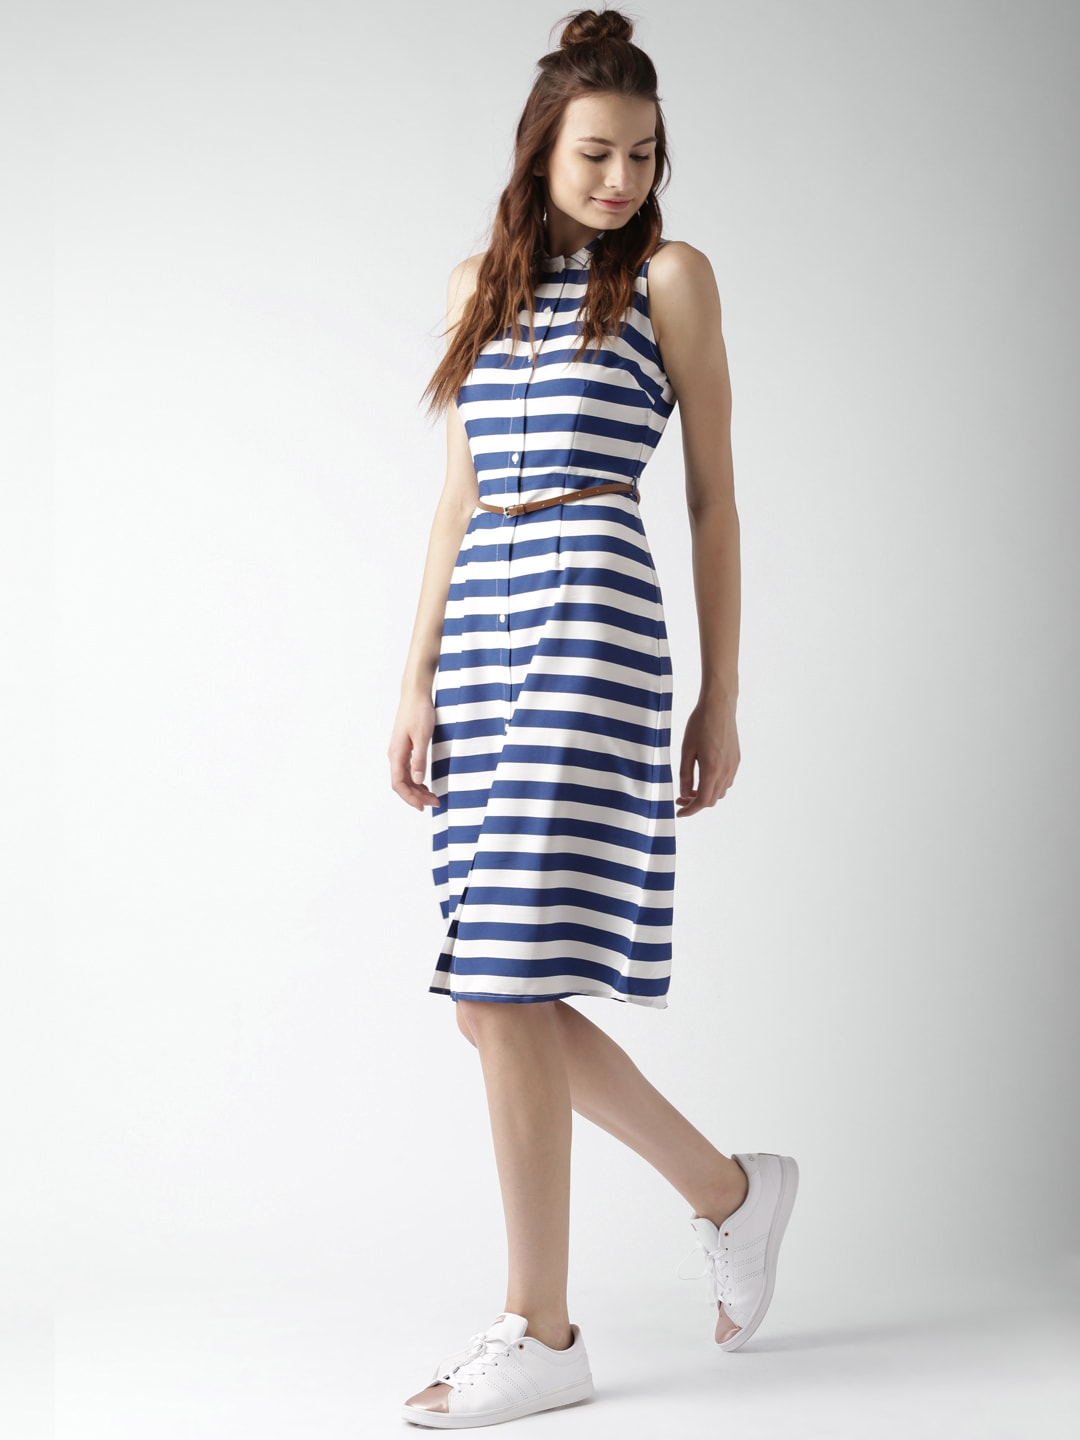 Striped Dresses - Buy Striped Dresses online in India 6f8823438